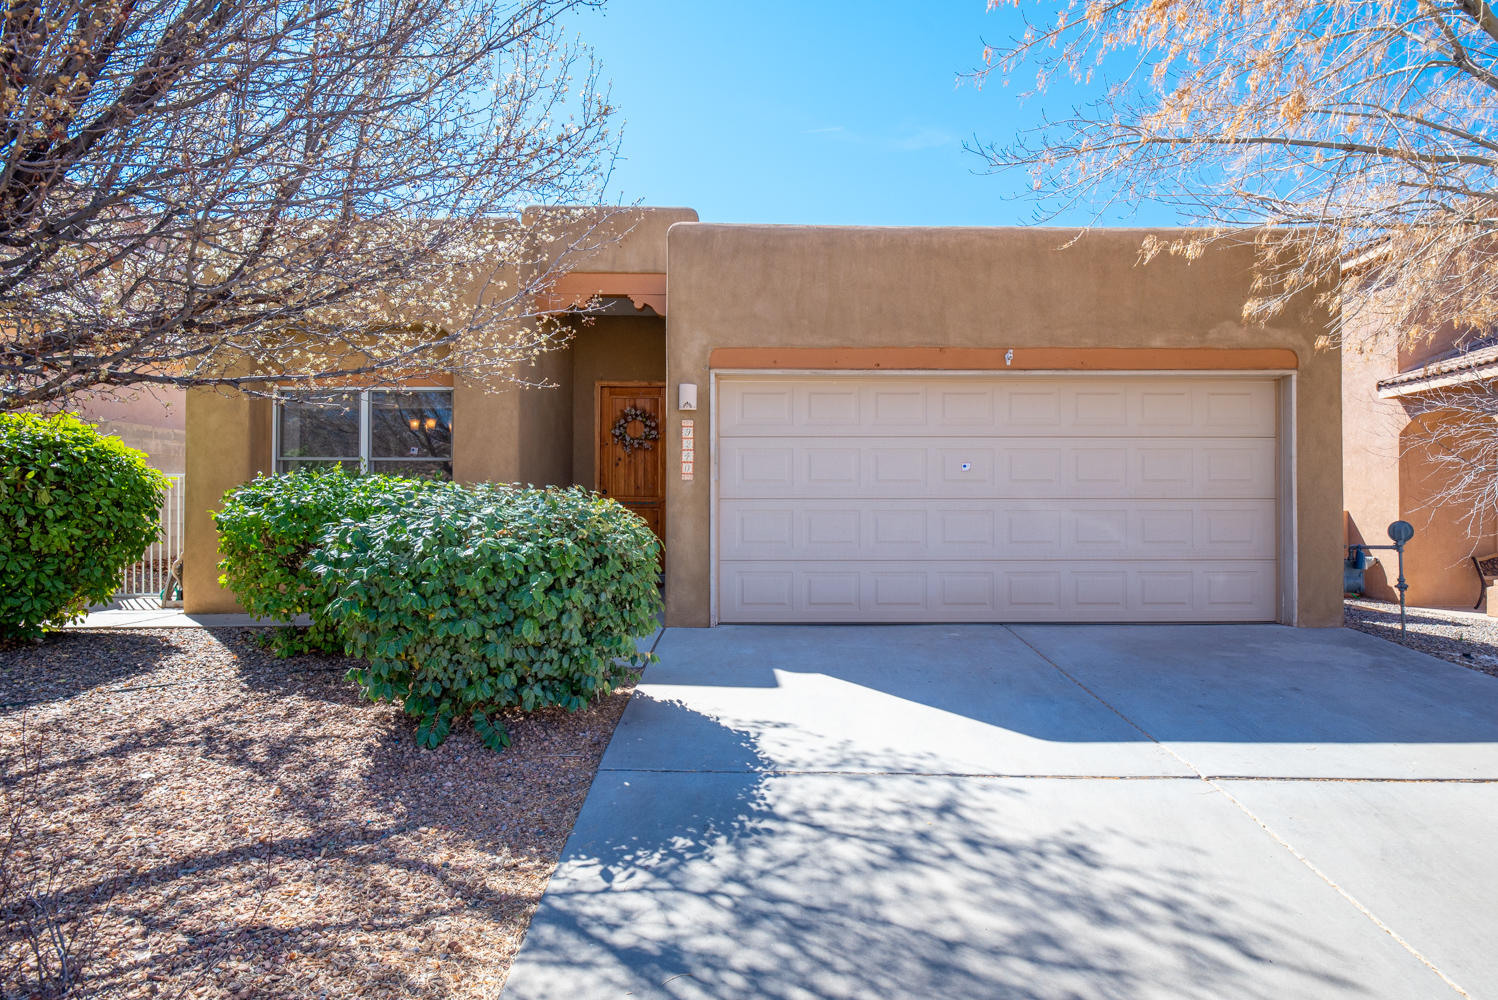 You will not want to miss this charming home in La Cueva school district! Great room with Vigas ceiling, gas fireplace, granite counter tops, stainless steel appliances, large master bedroom, 20' raised ceiling.  Come and see it today.